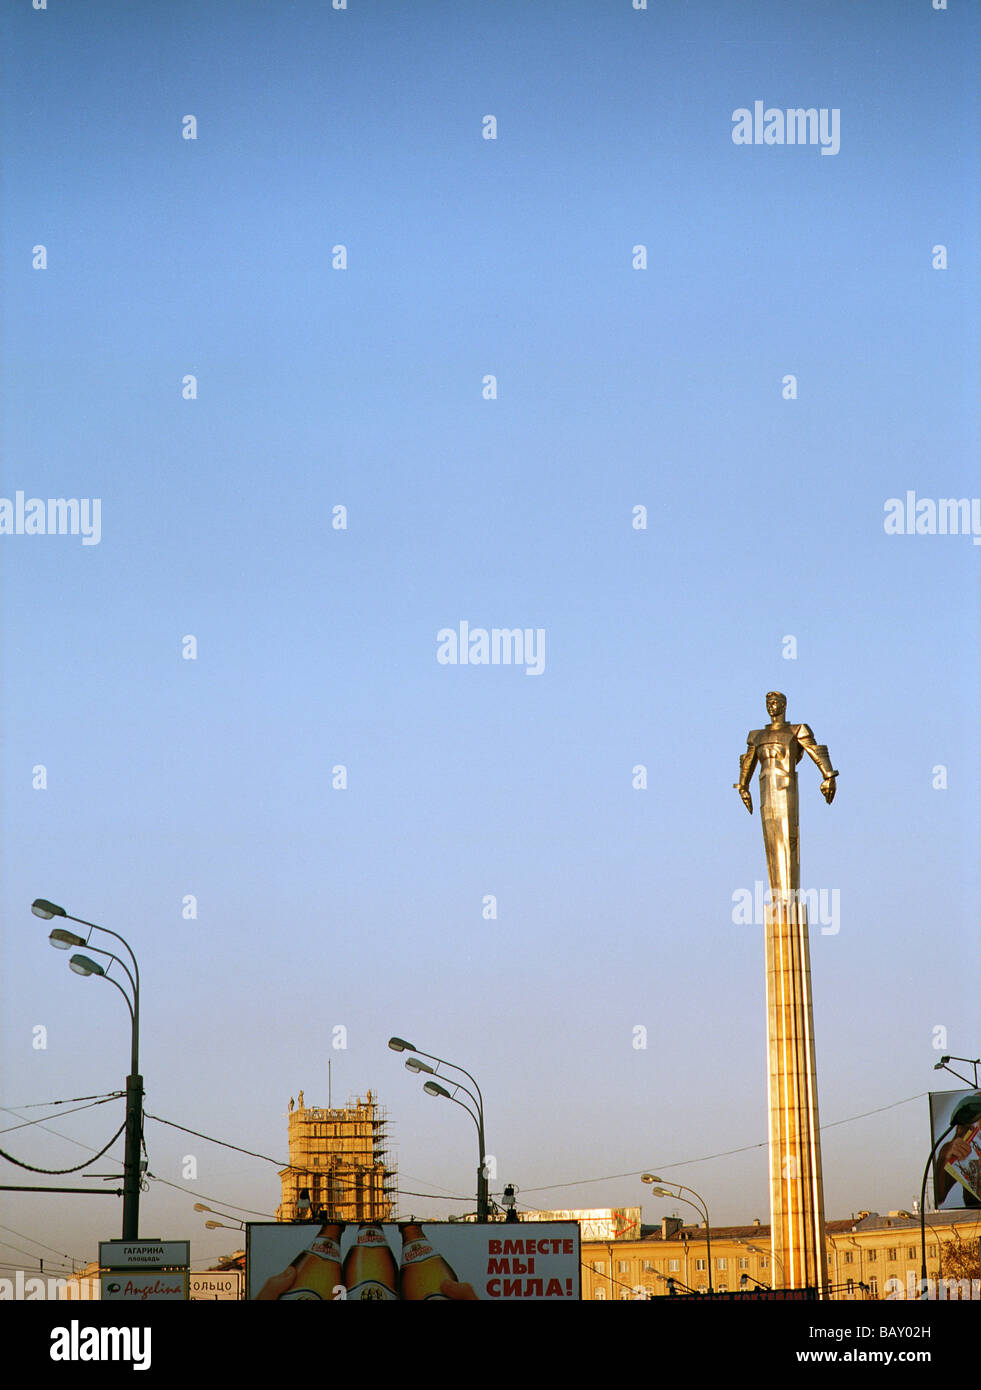 Le Shining statue de Youri Gagarine, Leninsky Prospect, Moscou, Russie Photo Stock